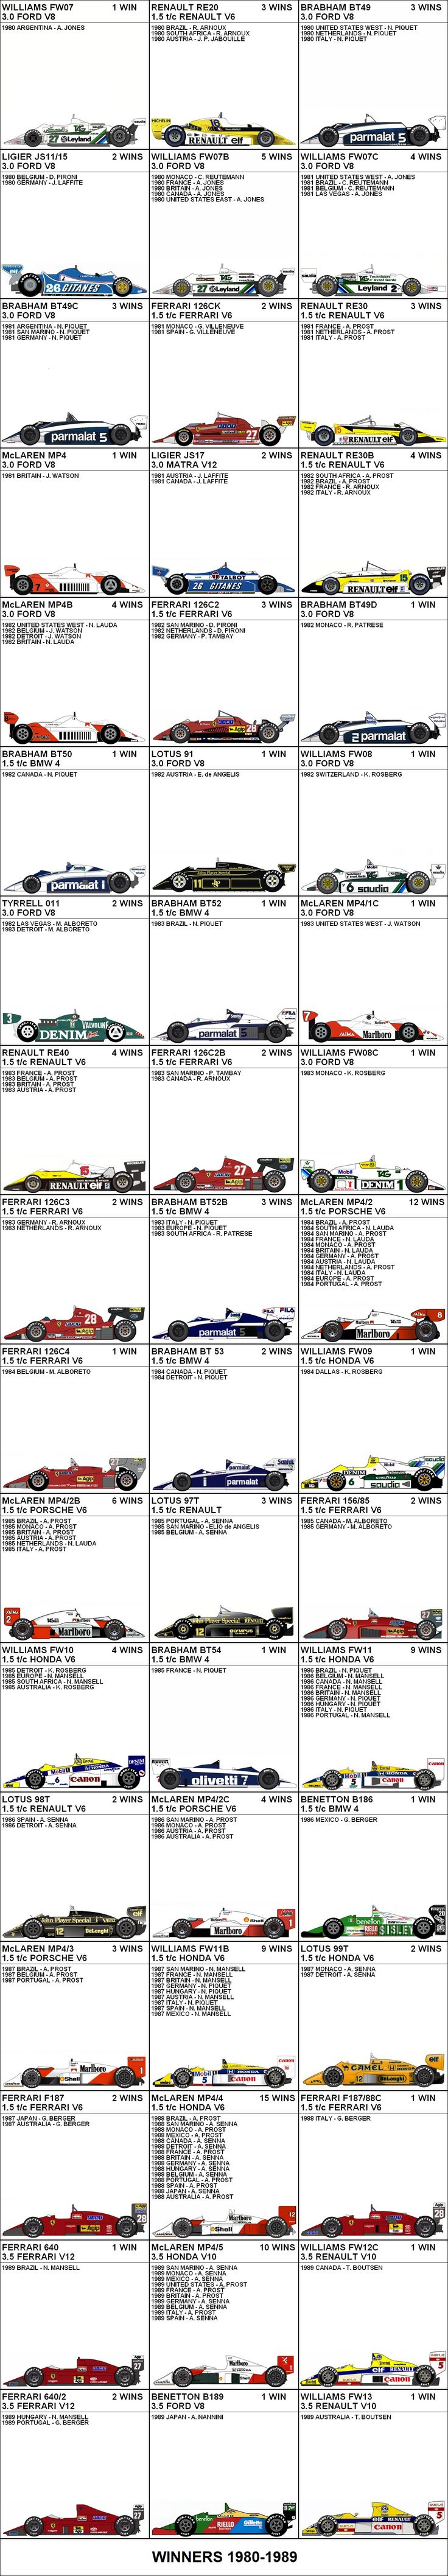 Formula One Grand Prix Winners 1980-1989